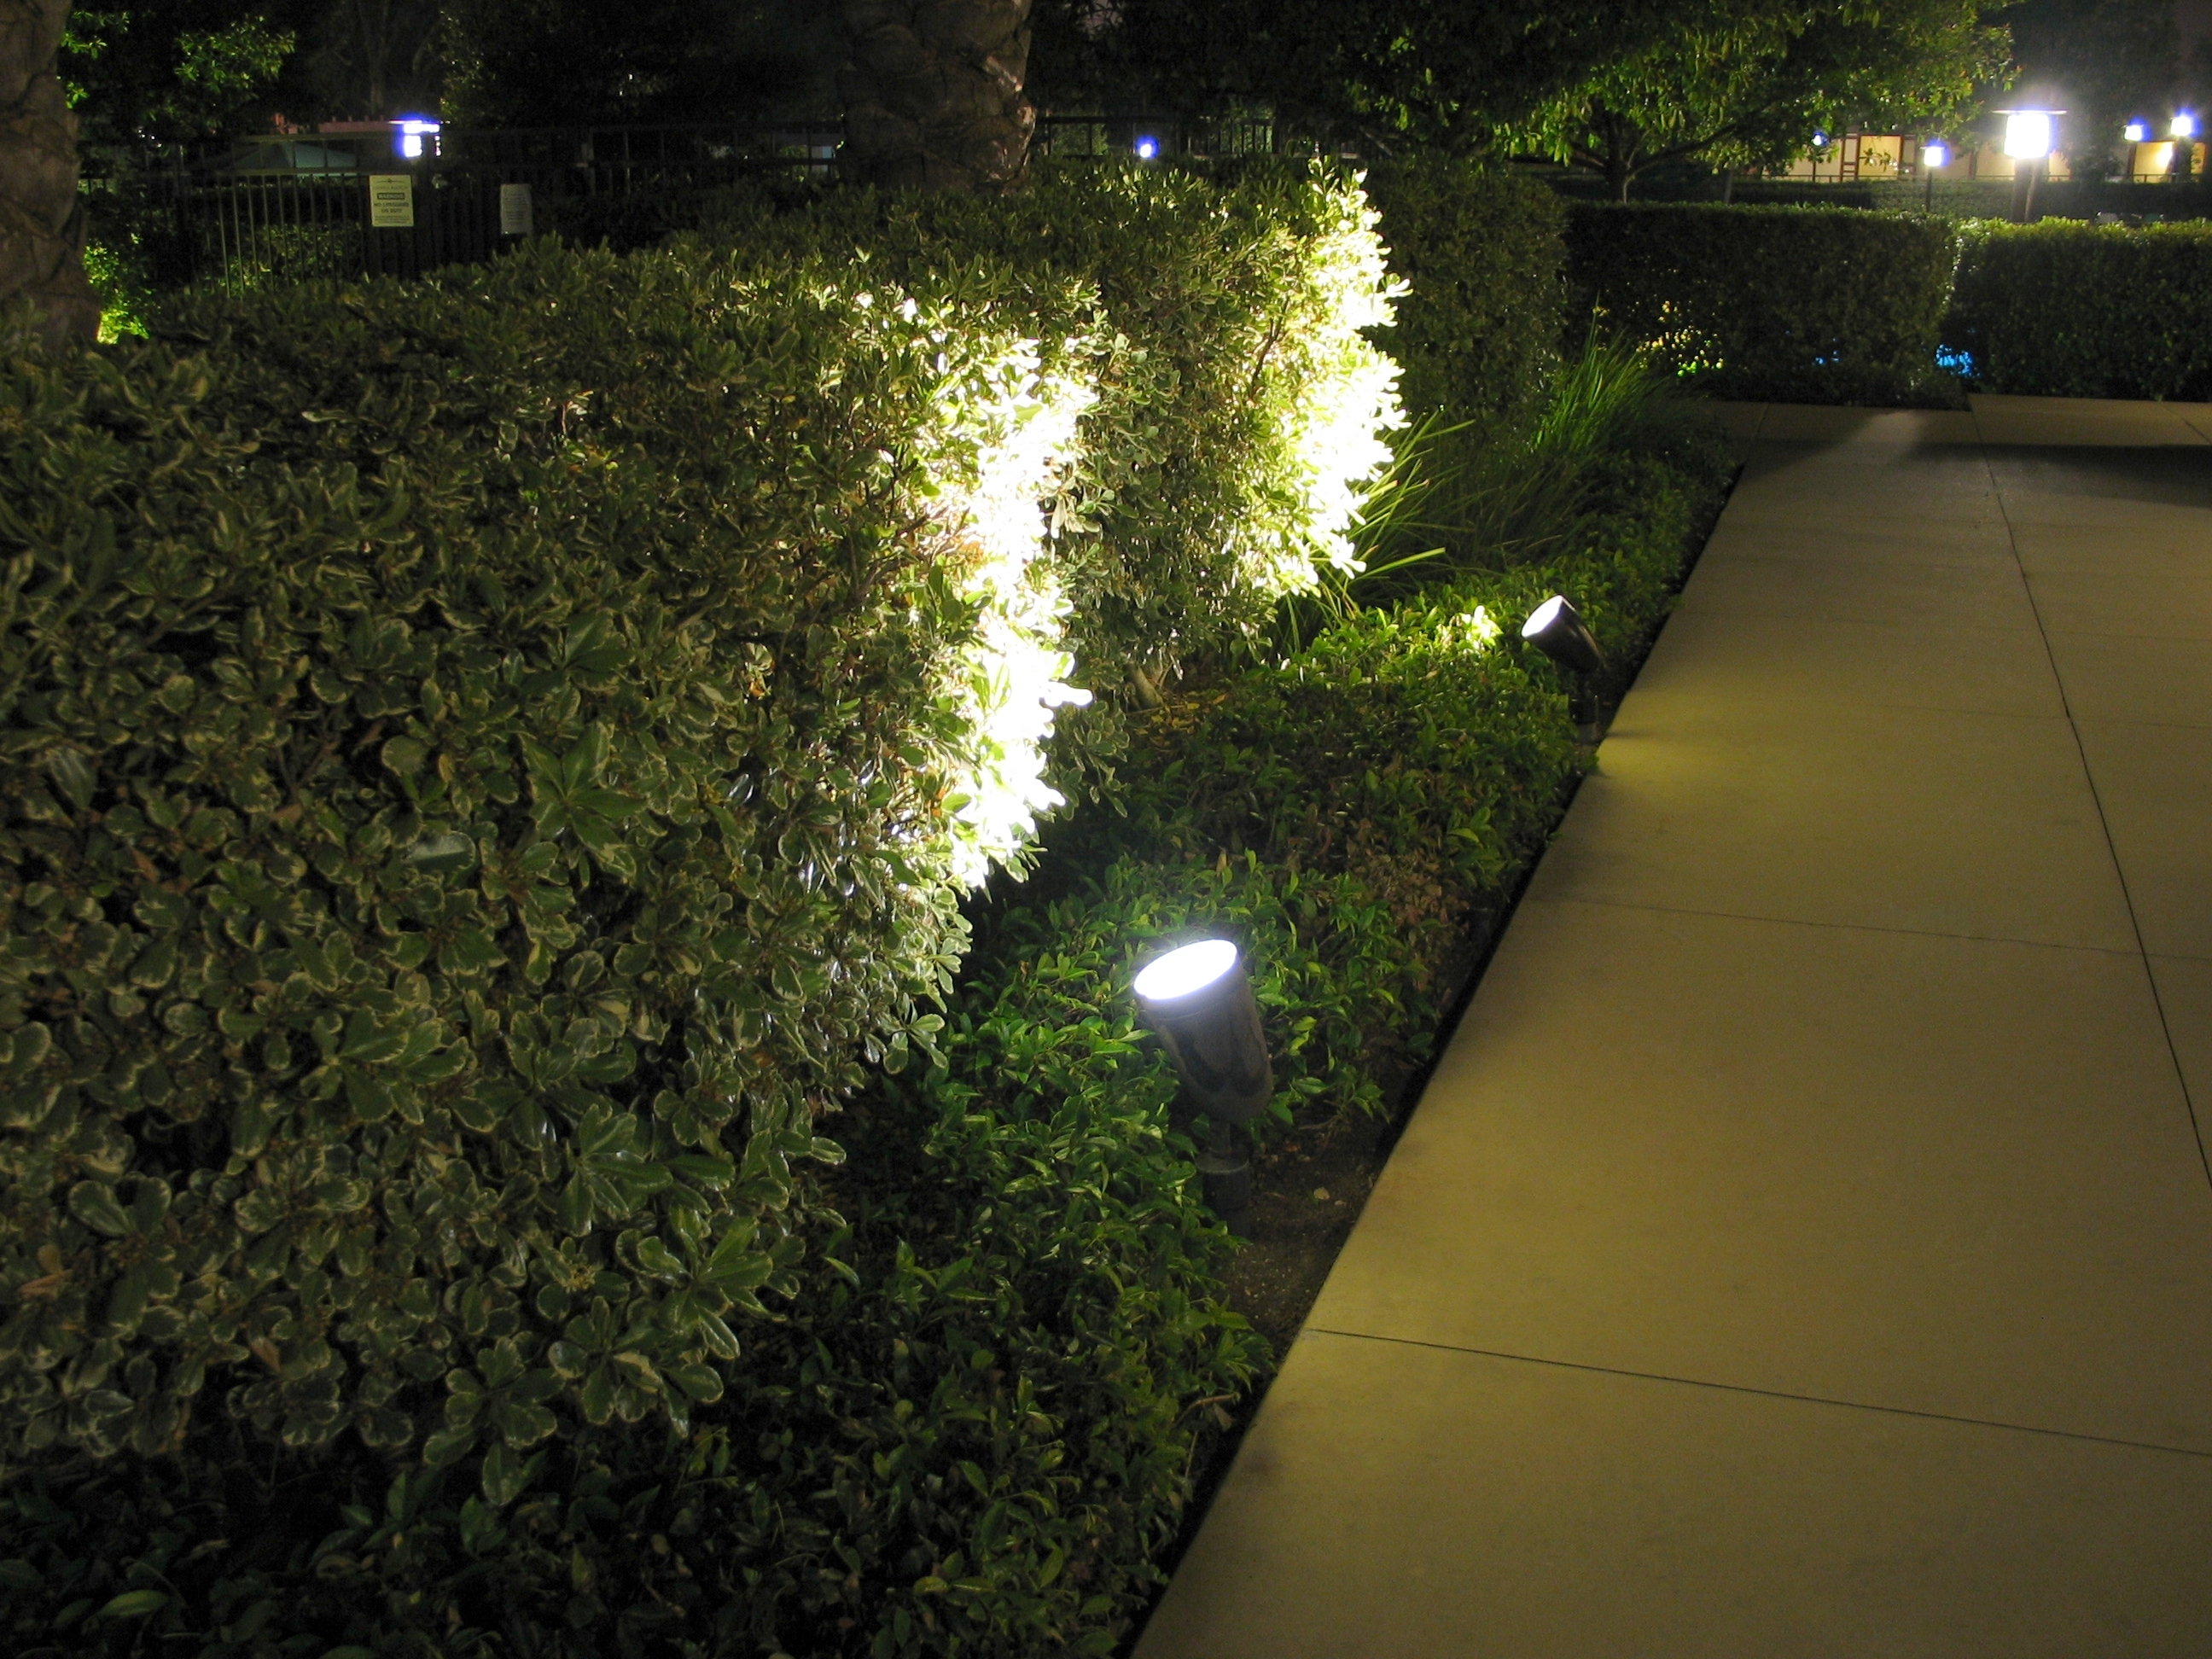 Image of: Ledtronics Led Spotlights Improve Landscape Lighting Efficiency In For Landscape Spotlights Wonderful Landscape Spotlights At Night